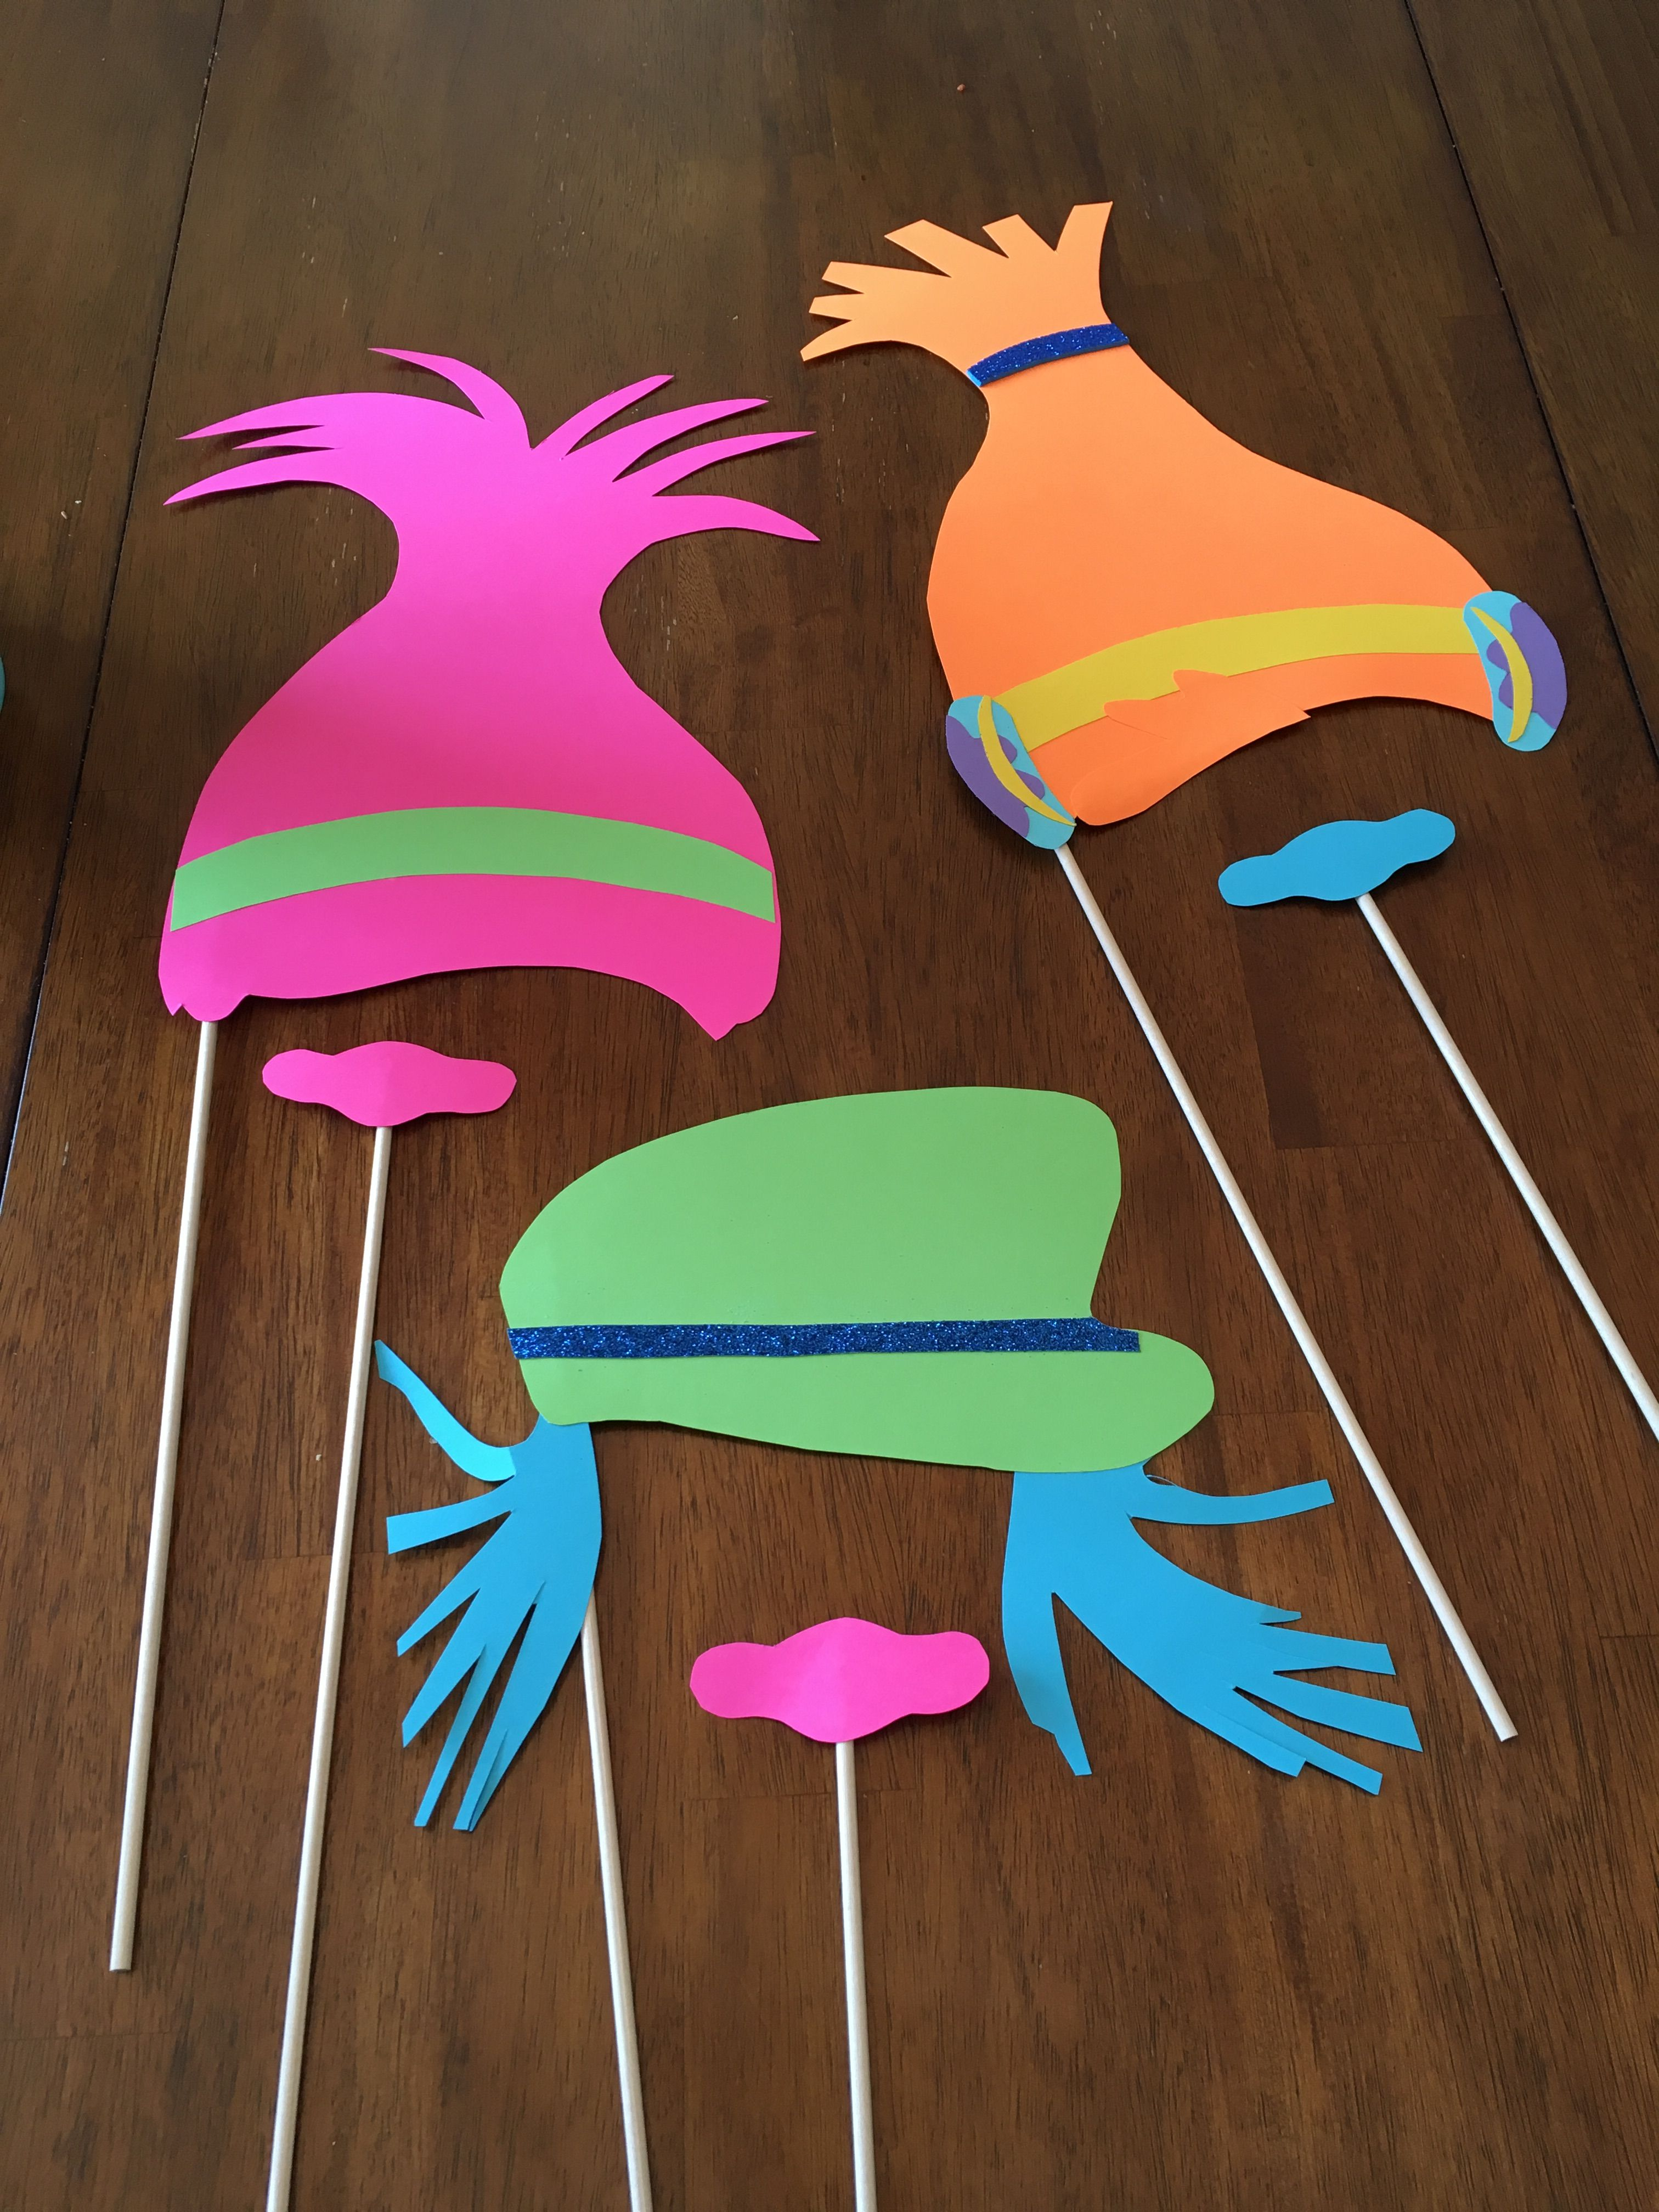 Trolls party photo booth props made from michaels crafts for Michaels crafts birthday parties